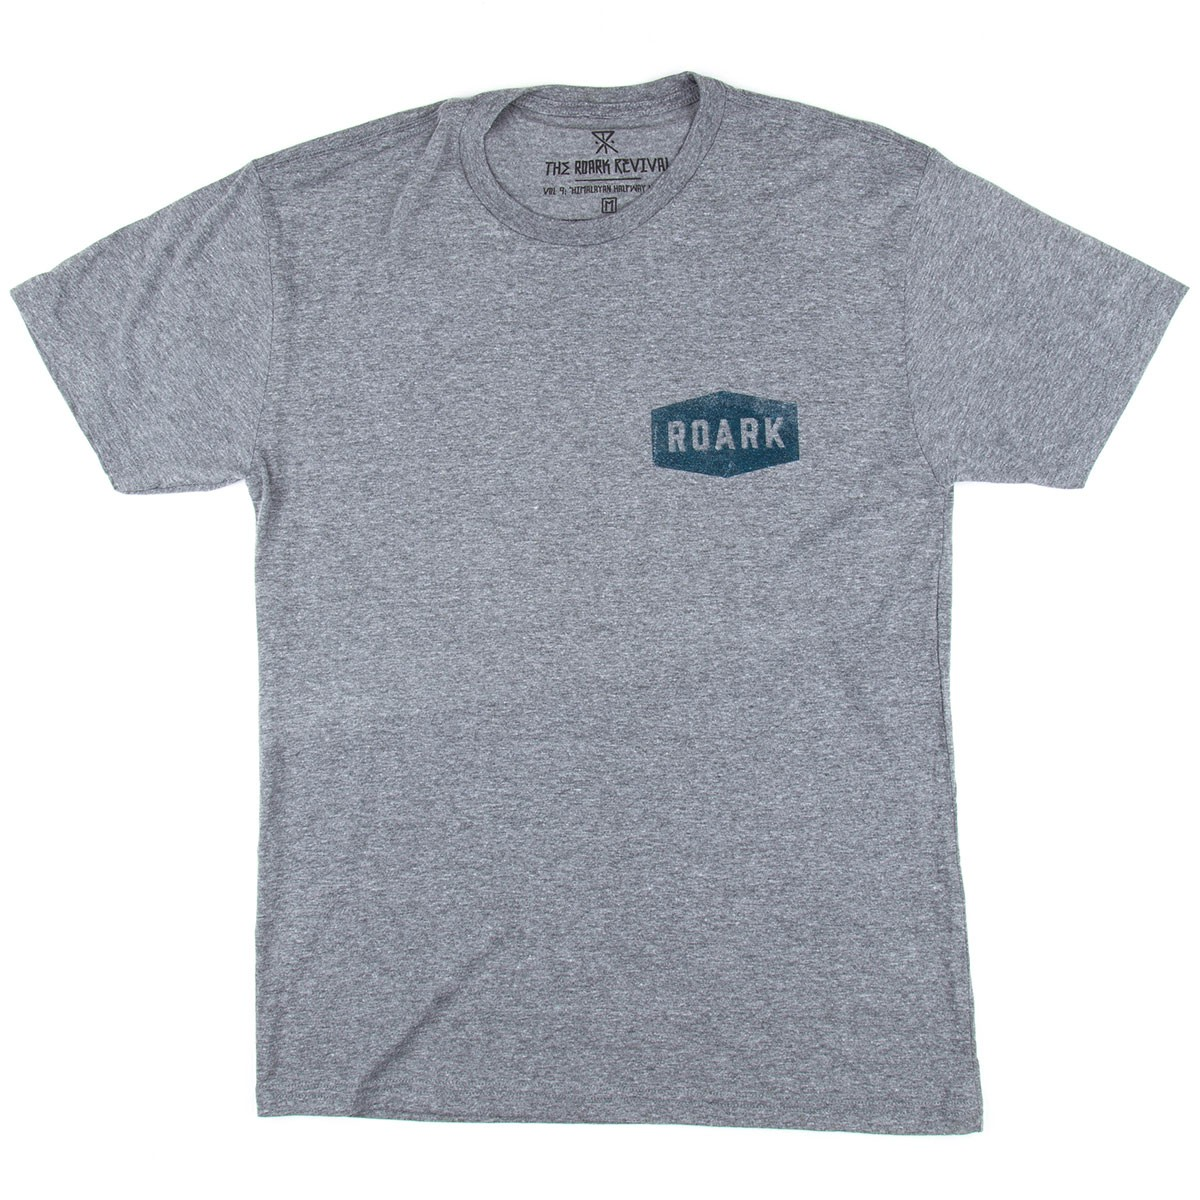 Roark Plaque T-Shirt - Heather Grey